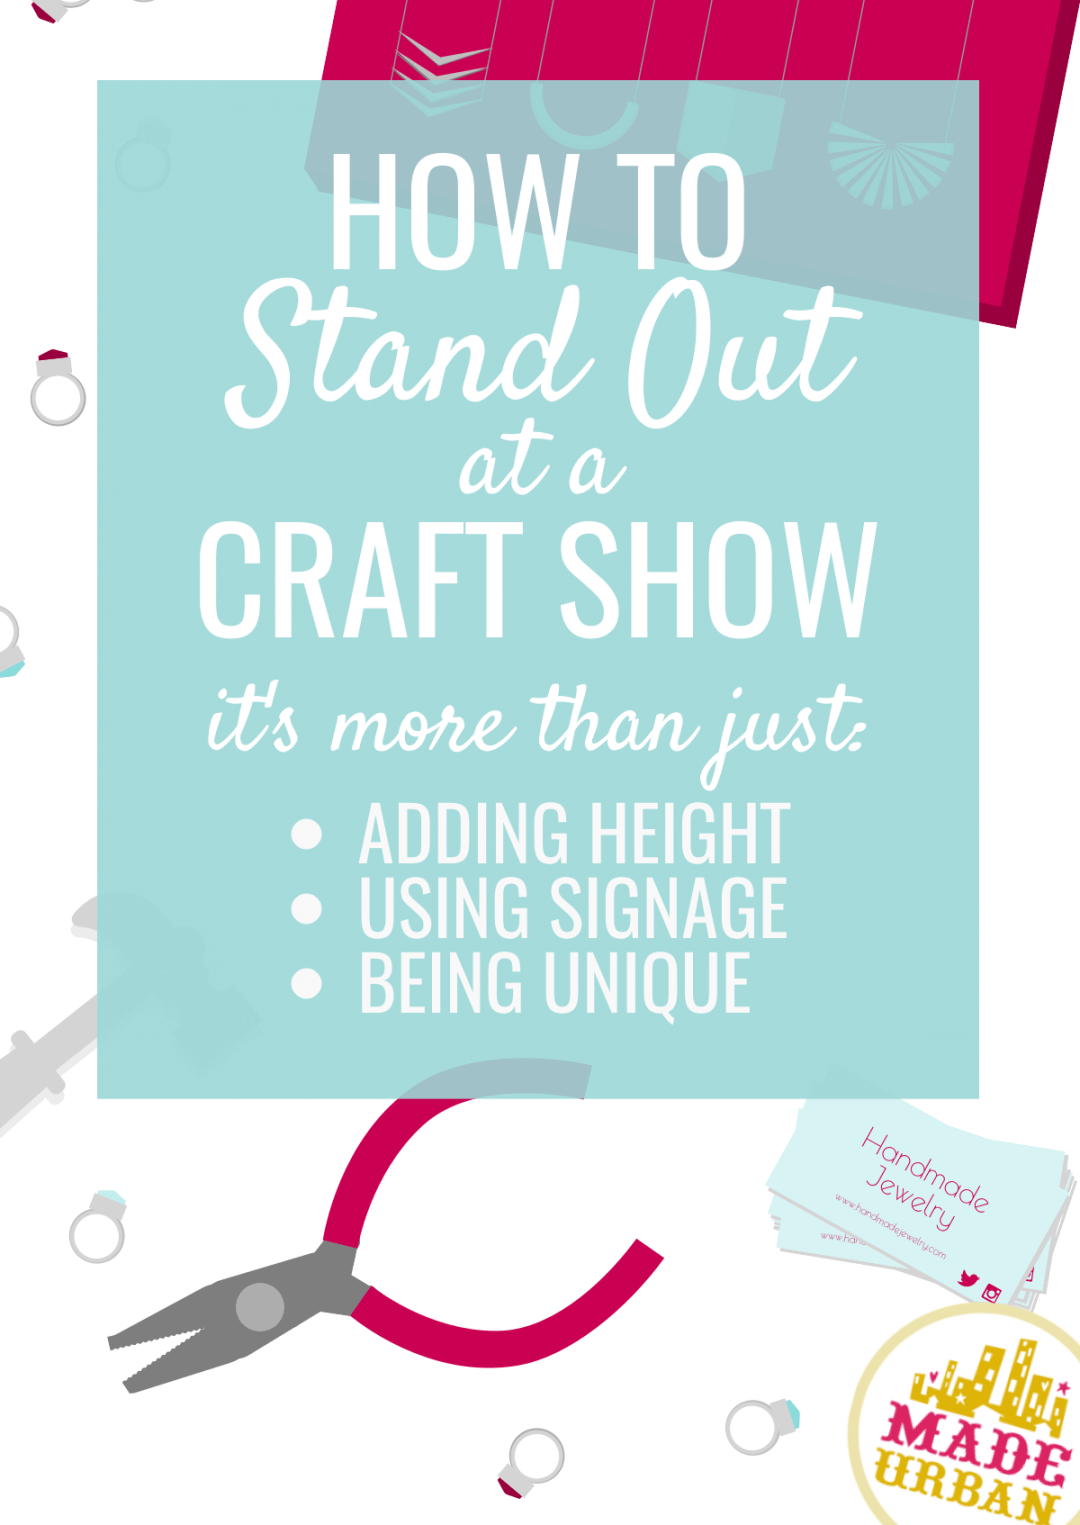 Want to Stand Out at a Craft Show? Try these Display Tricks